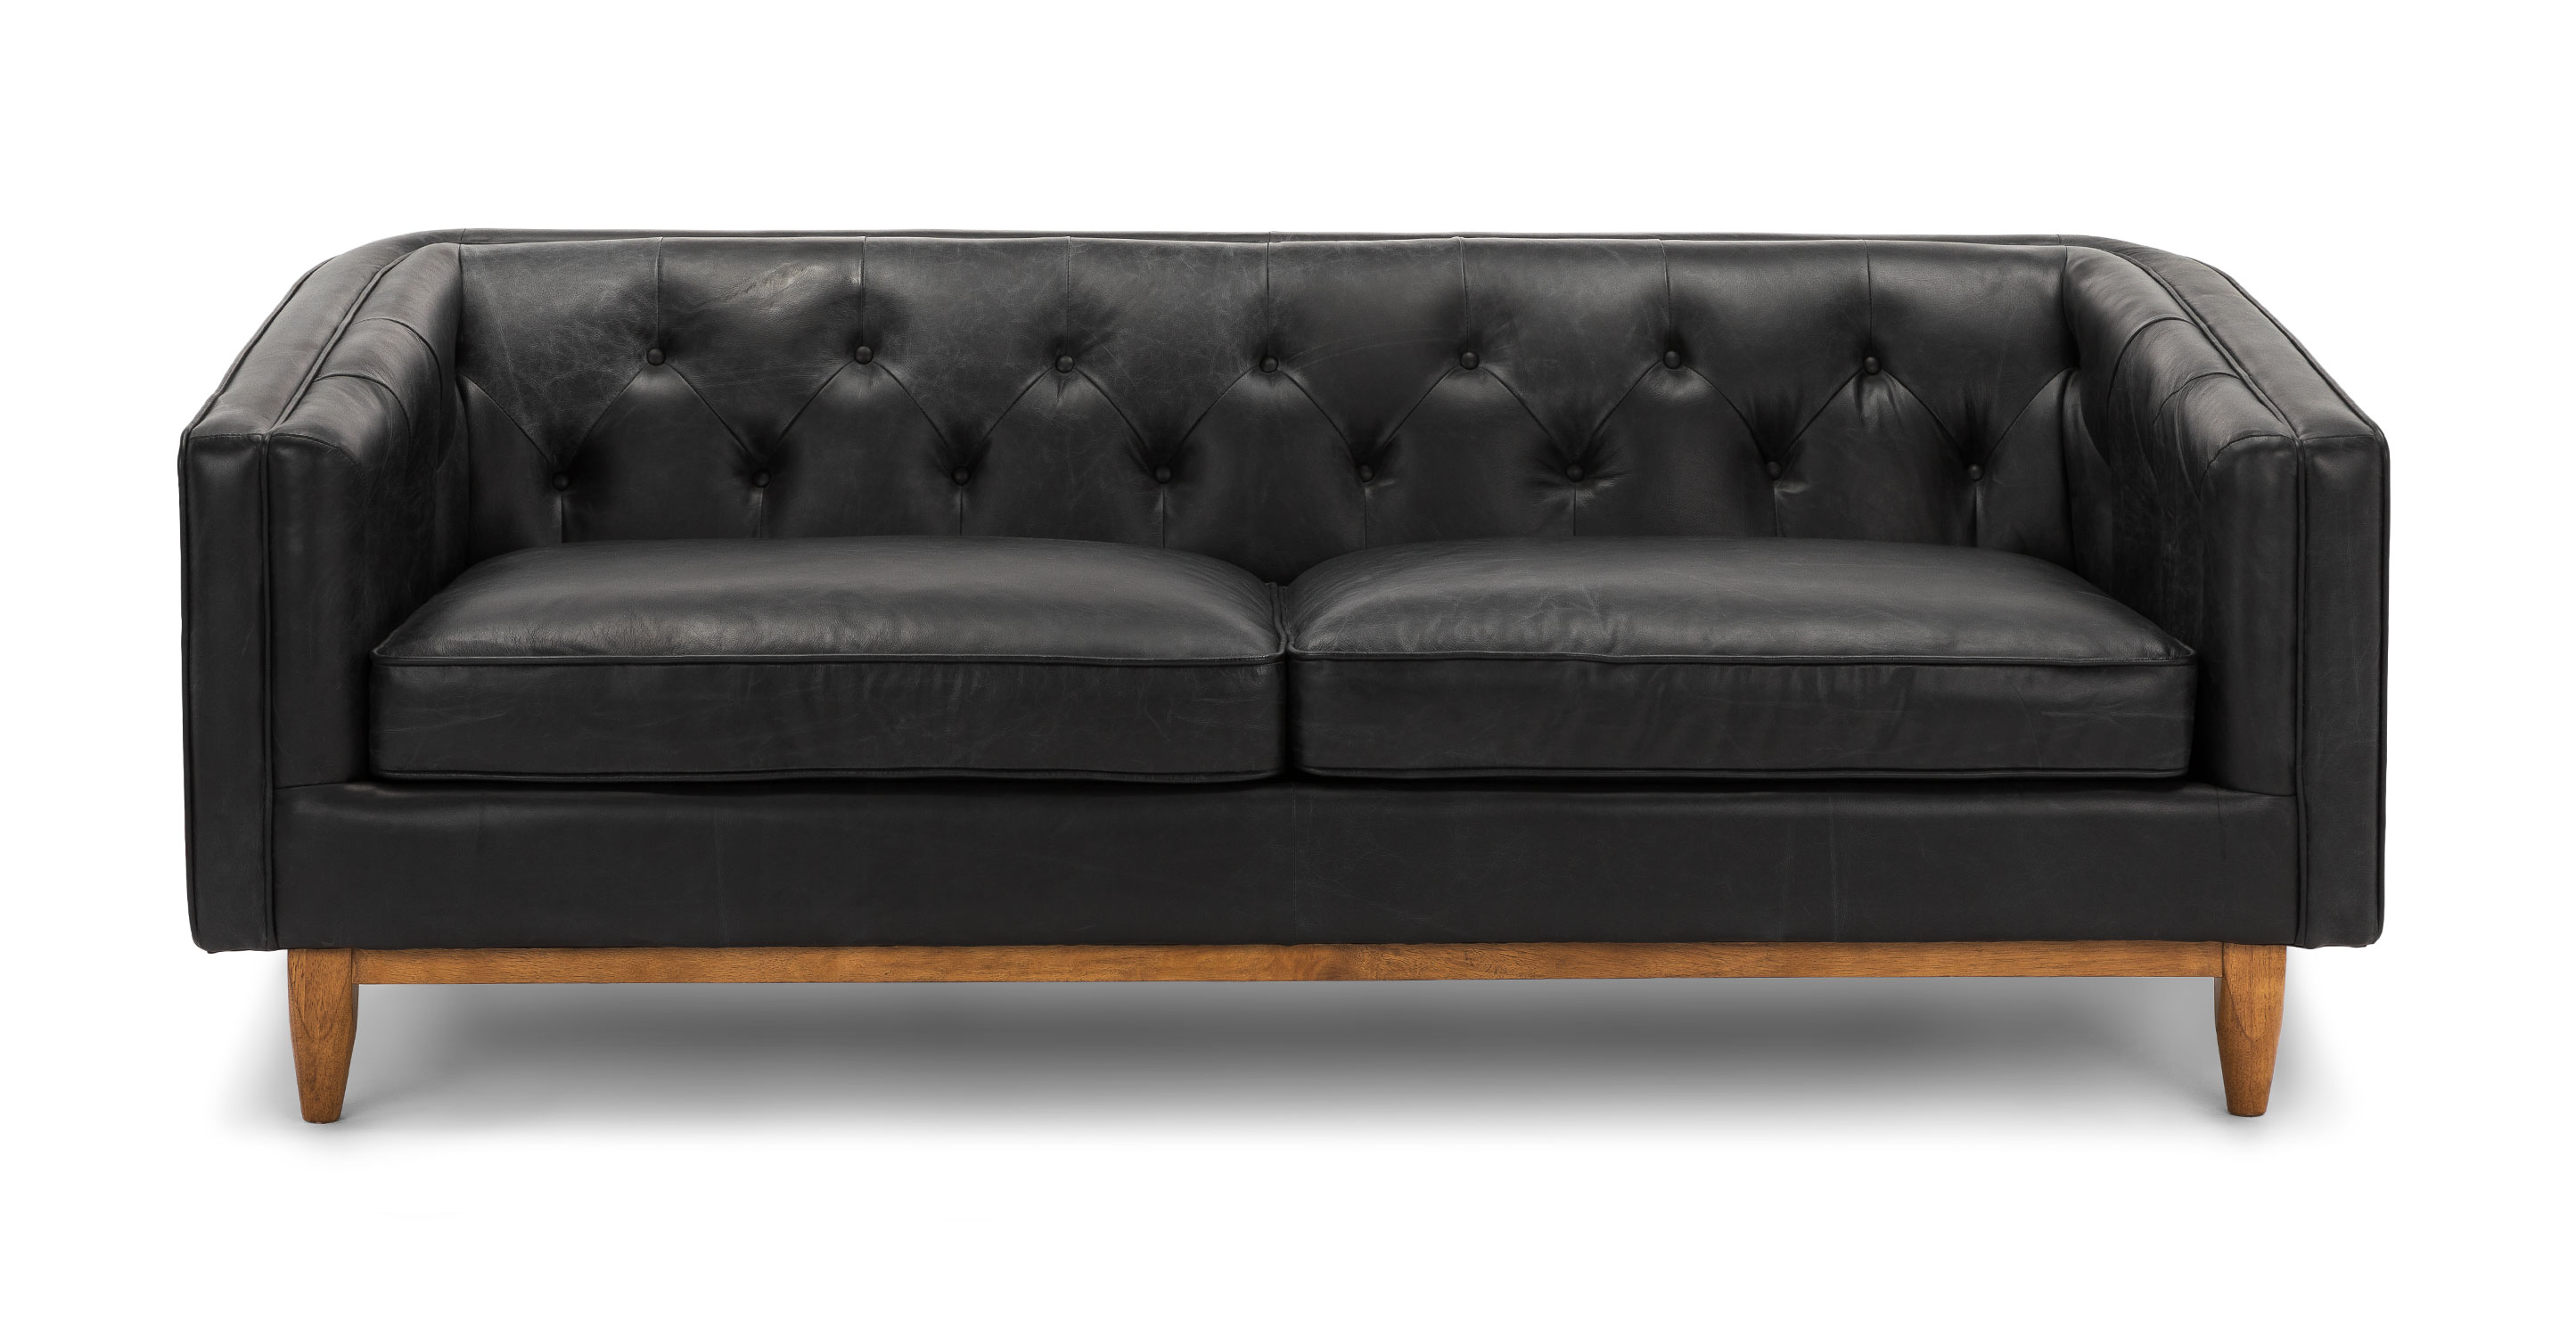 Oxford Black Alcott 3 Seater Leather Sofa Article